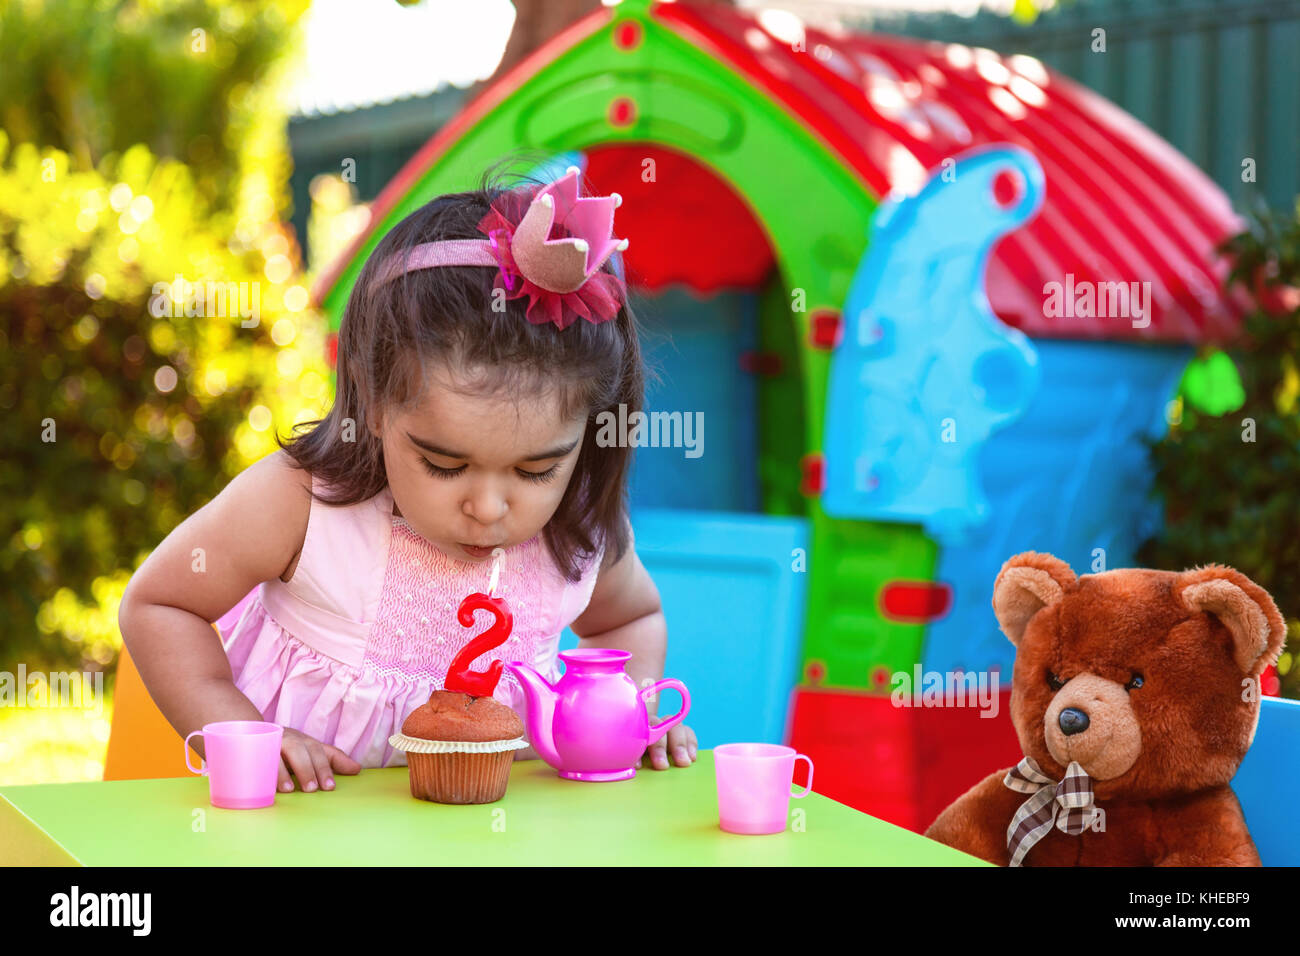 Baby toddler girl in outdoor second birthday party blowing candle on muffin. Teddy Bear as best friend, playhouse - Stock Image